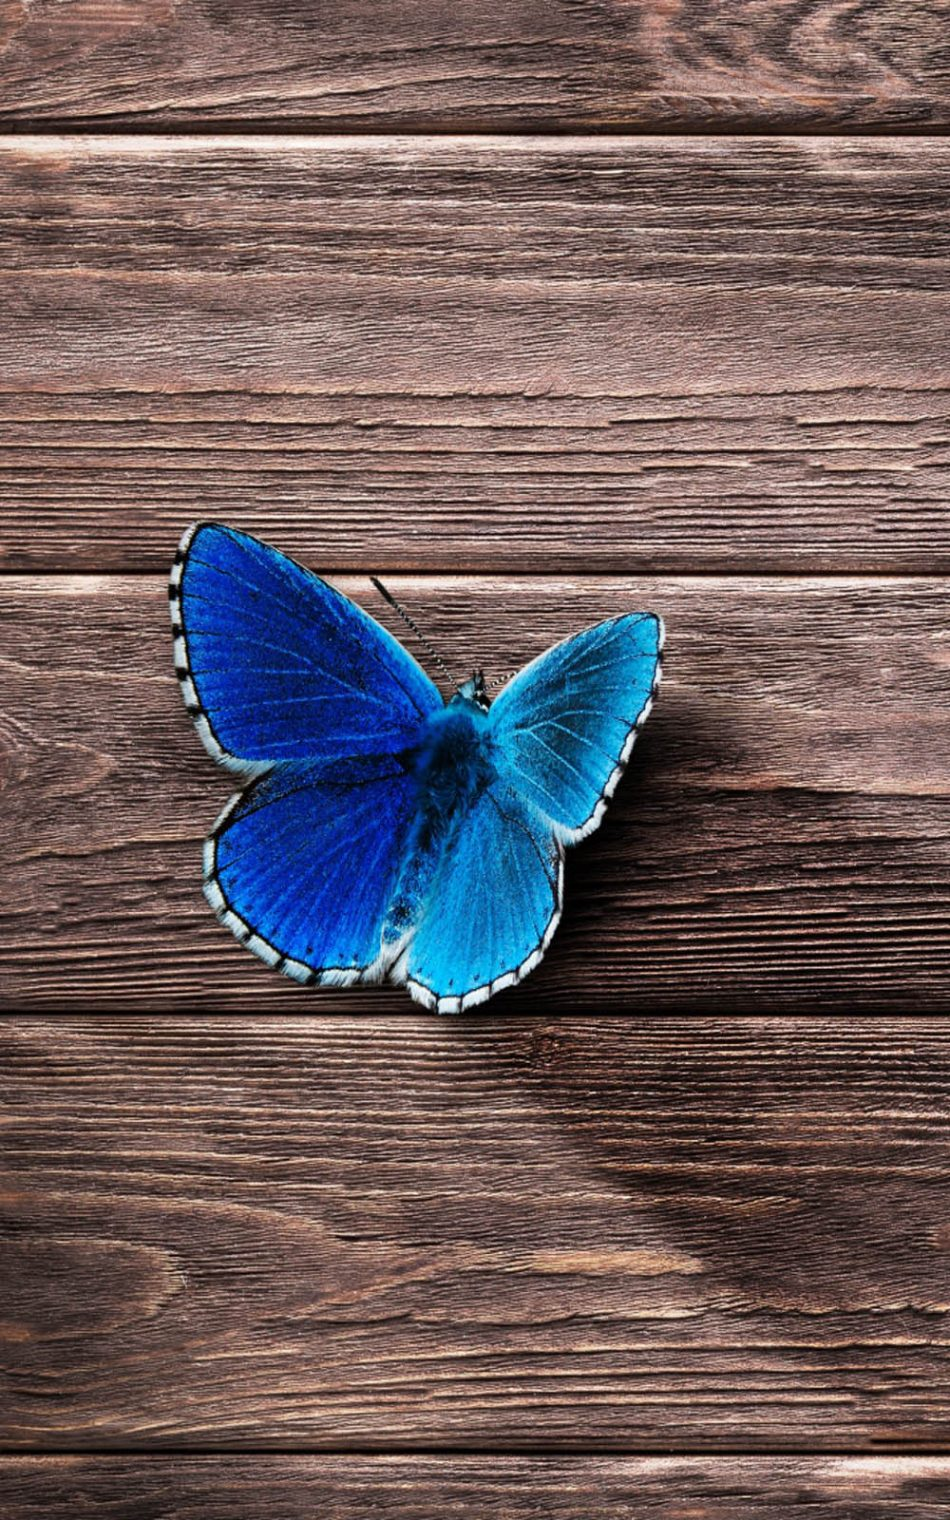 Download Beautiful Blue Butterfly Free Pure 4k Ultra Hd Mobile Wallpaper